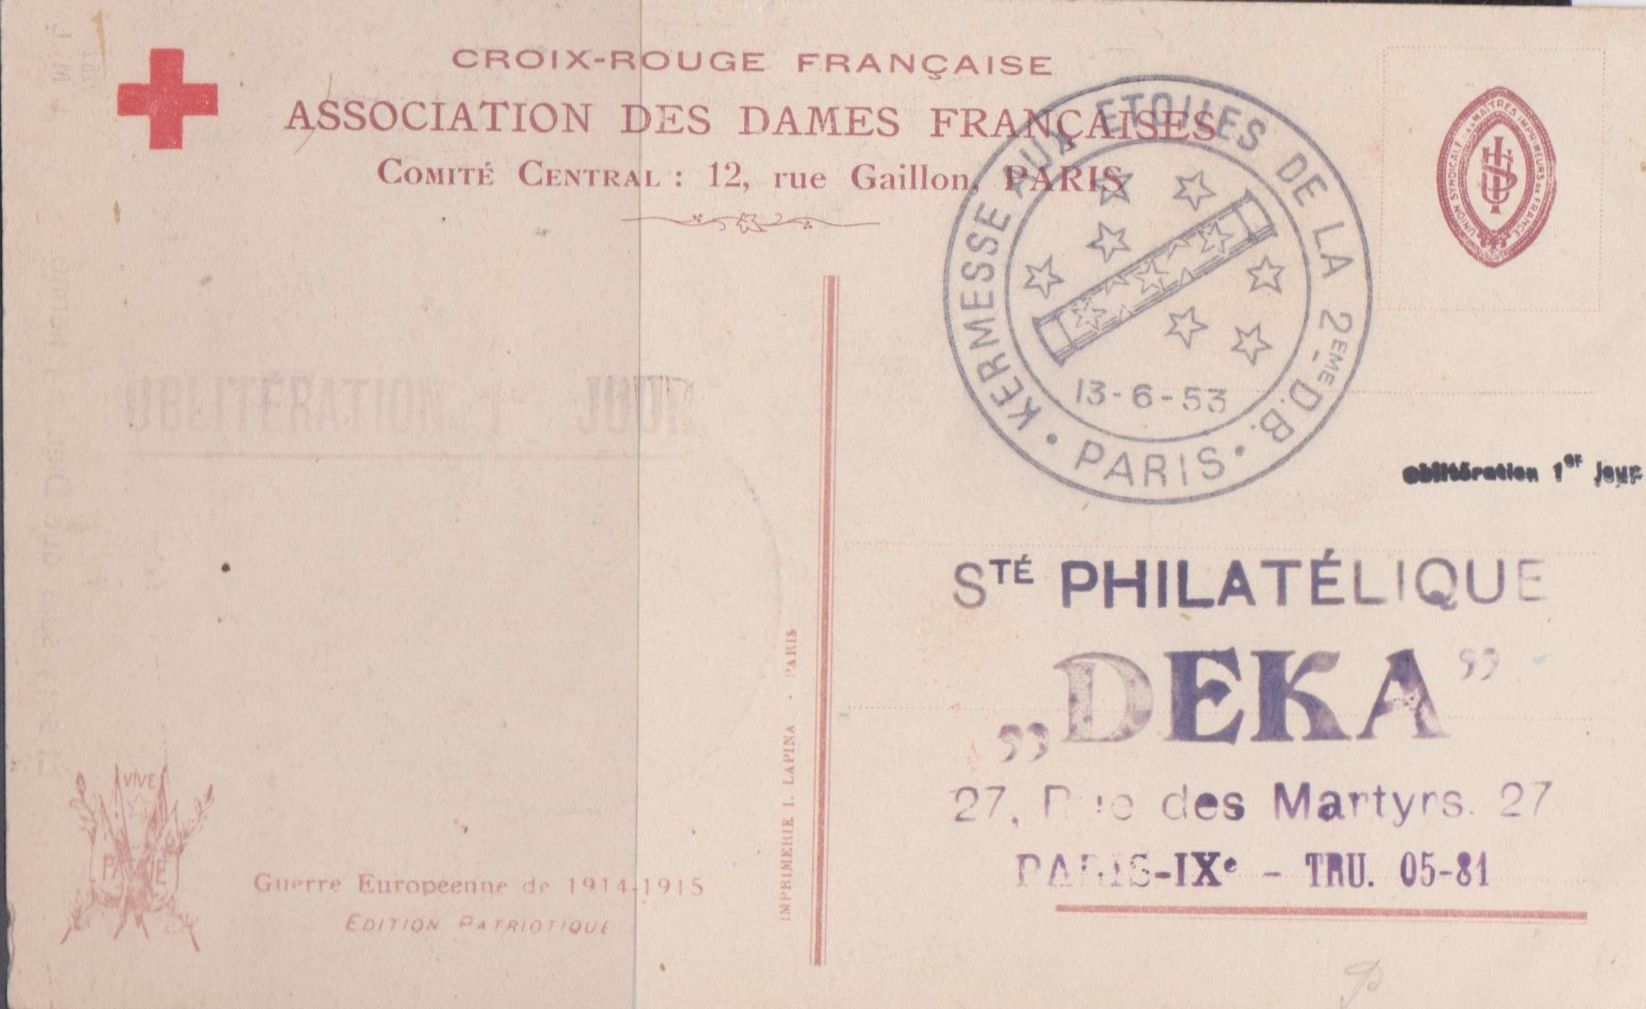 Croix Rouge Paris 13 French Red Cross Society Postcard Paris June 13 1953 Red